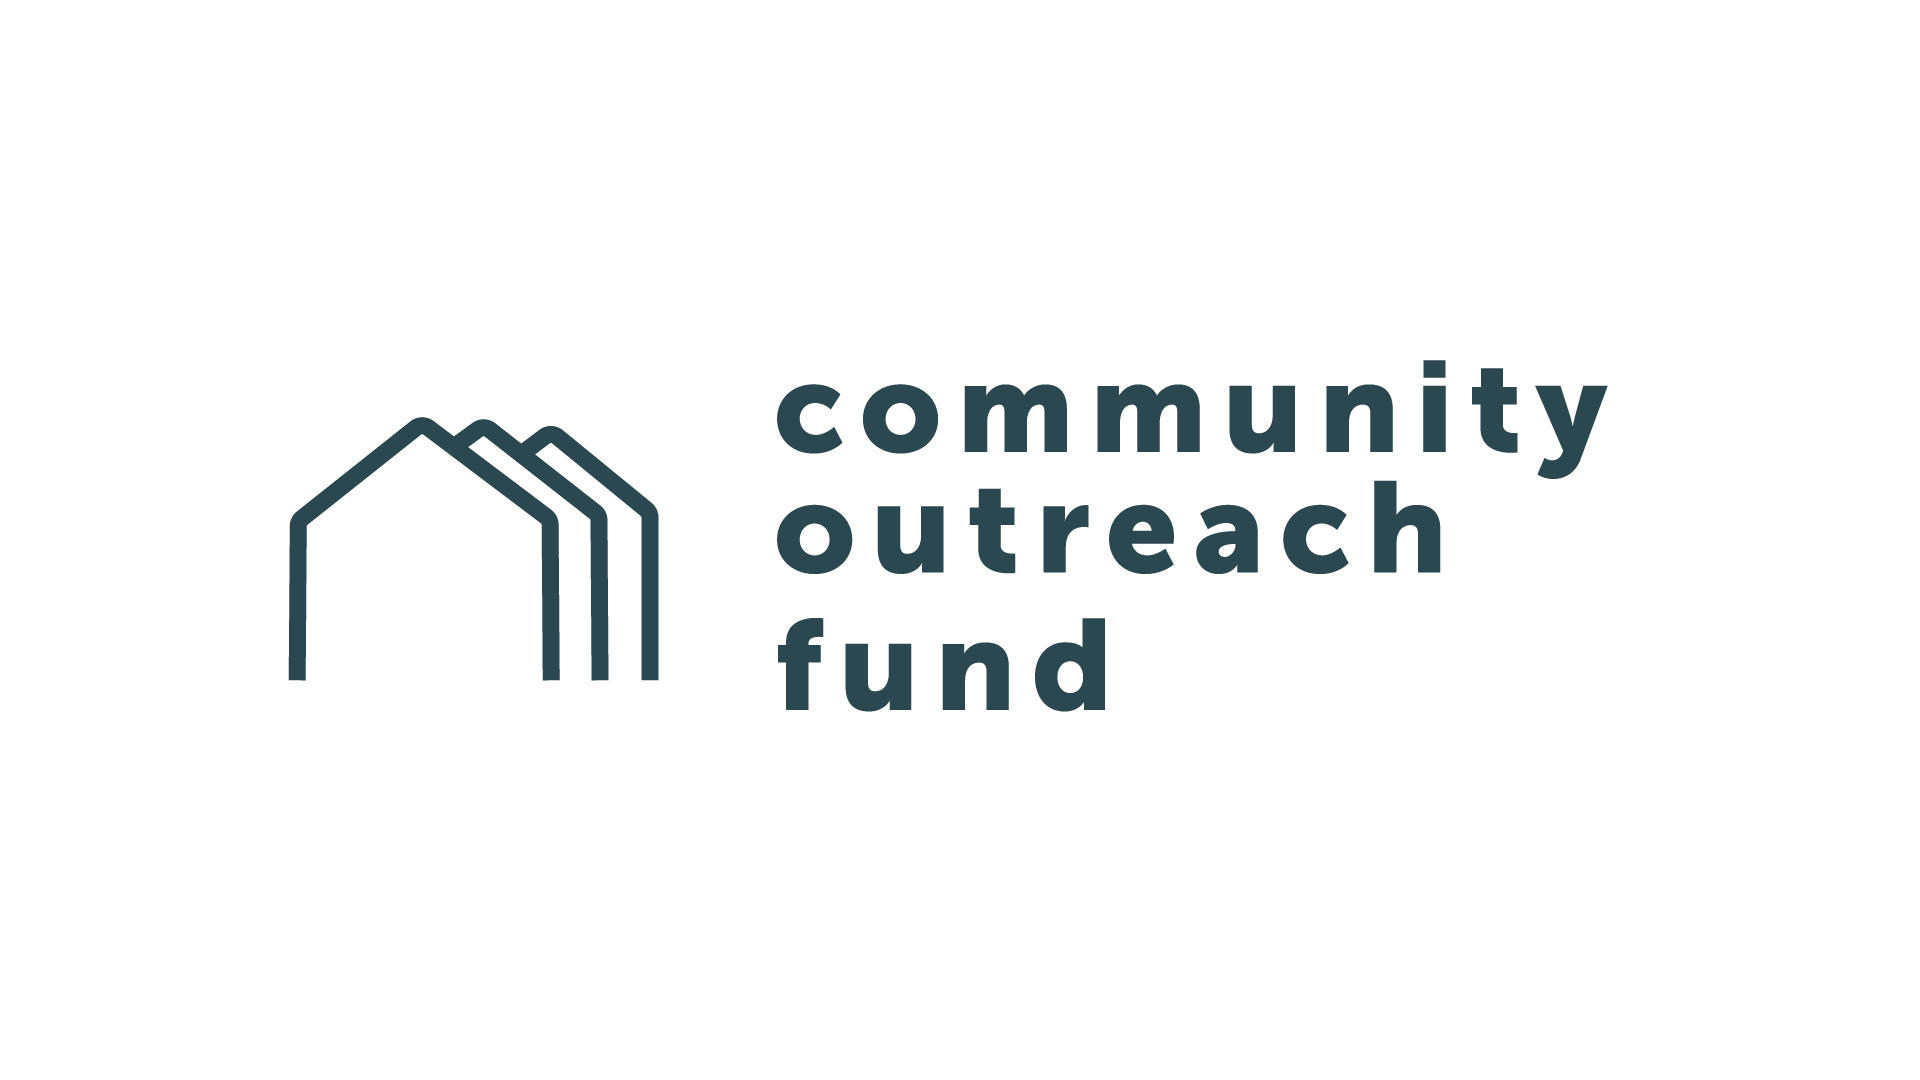 MC4_Community Outreach Fund-01.png